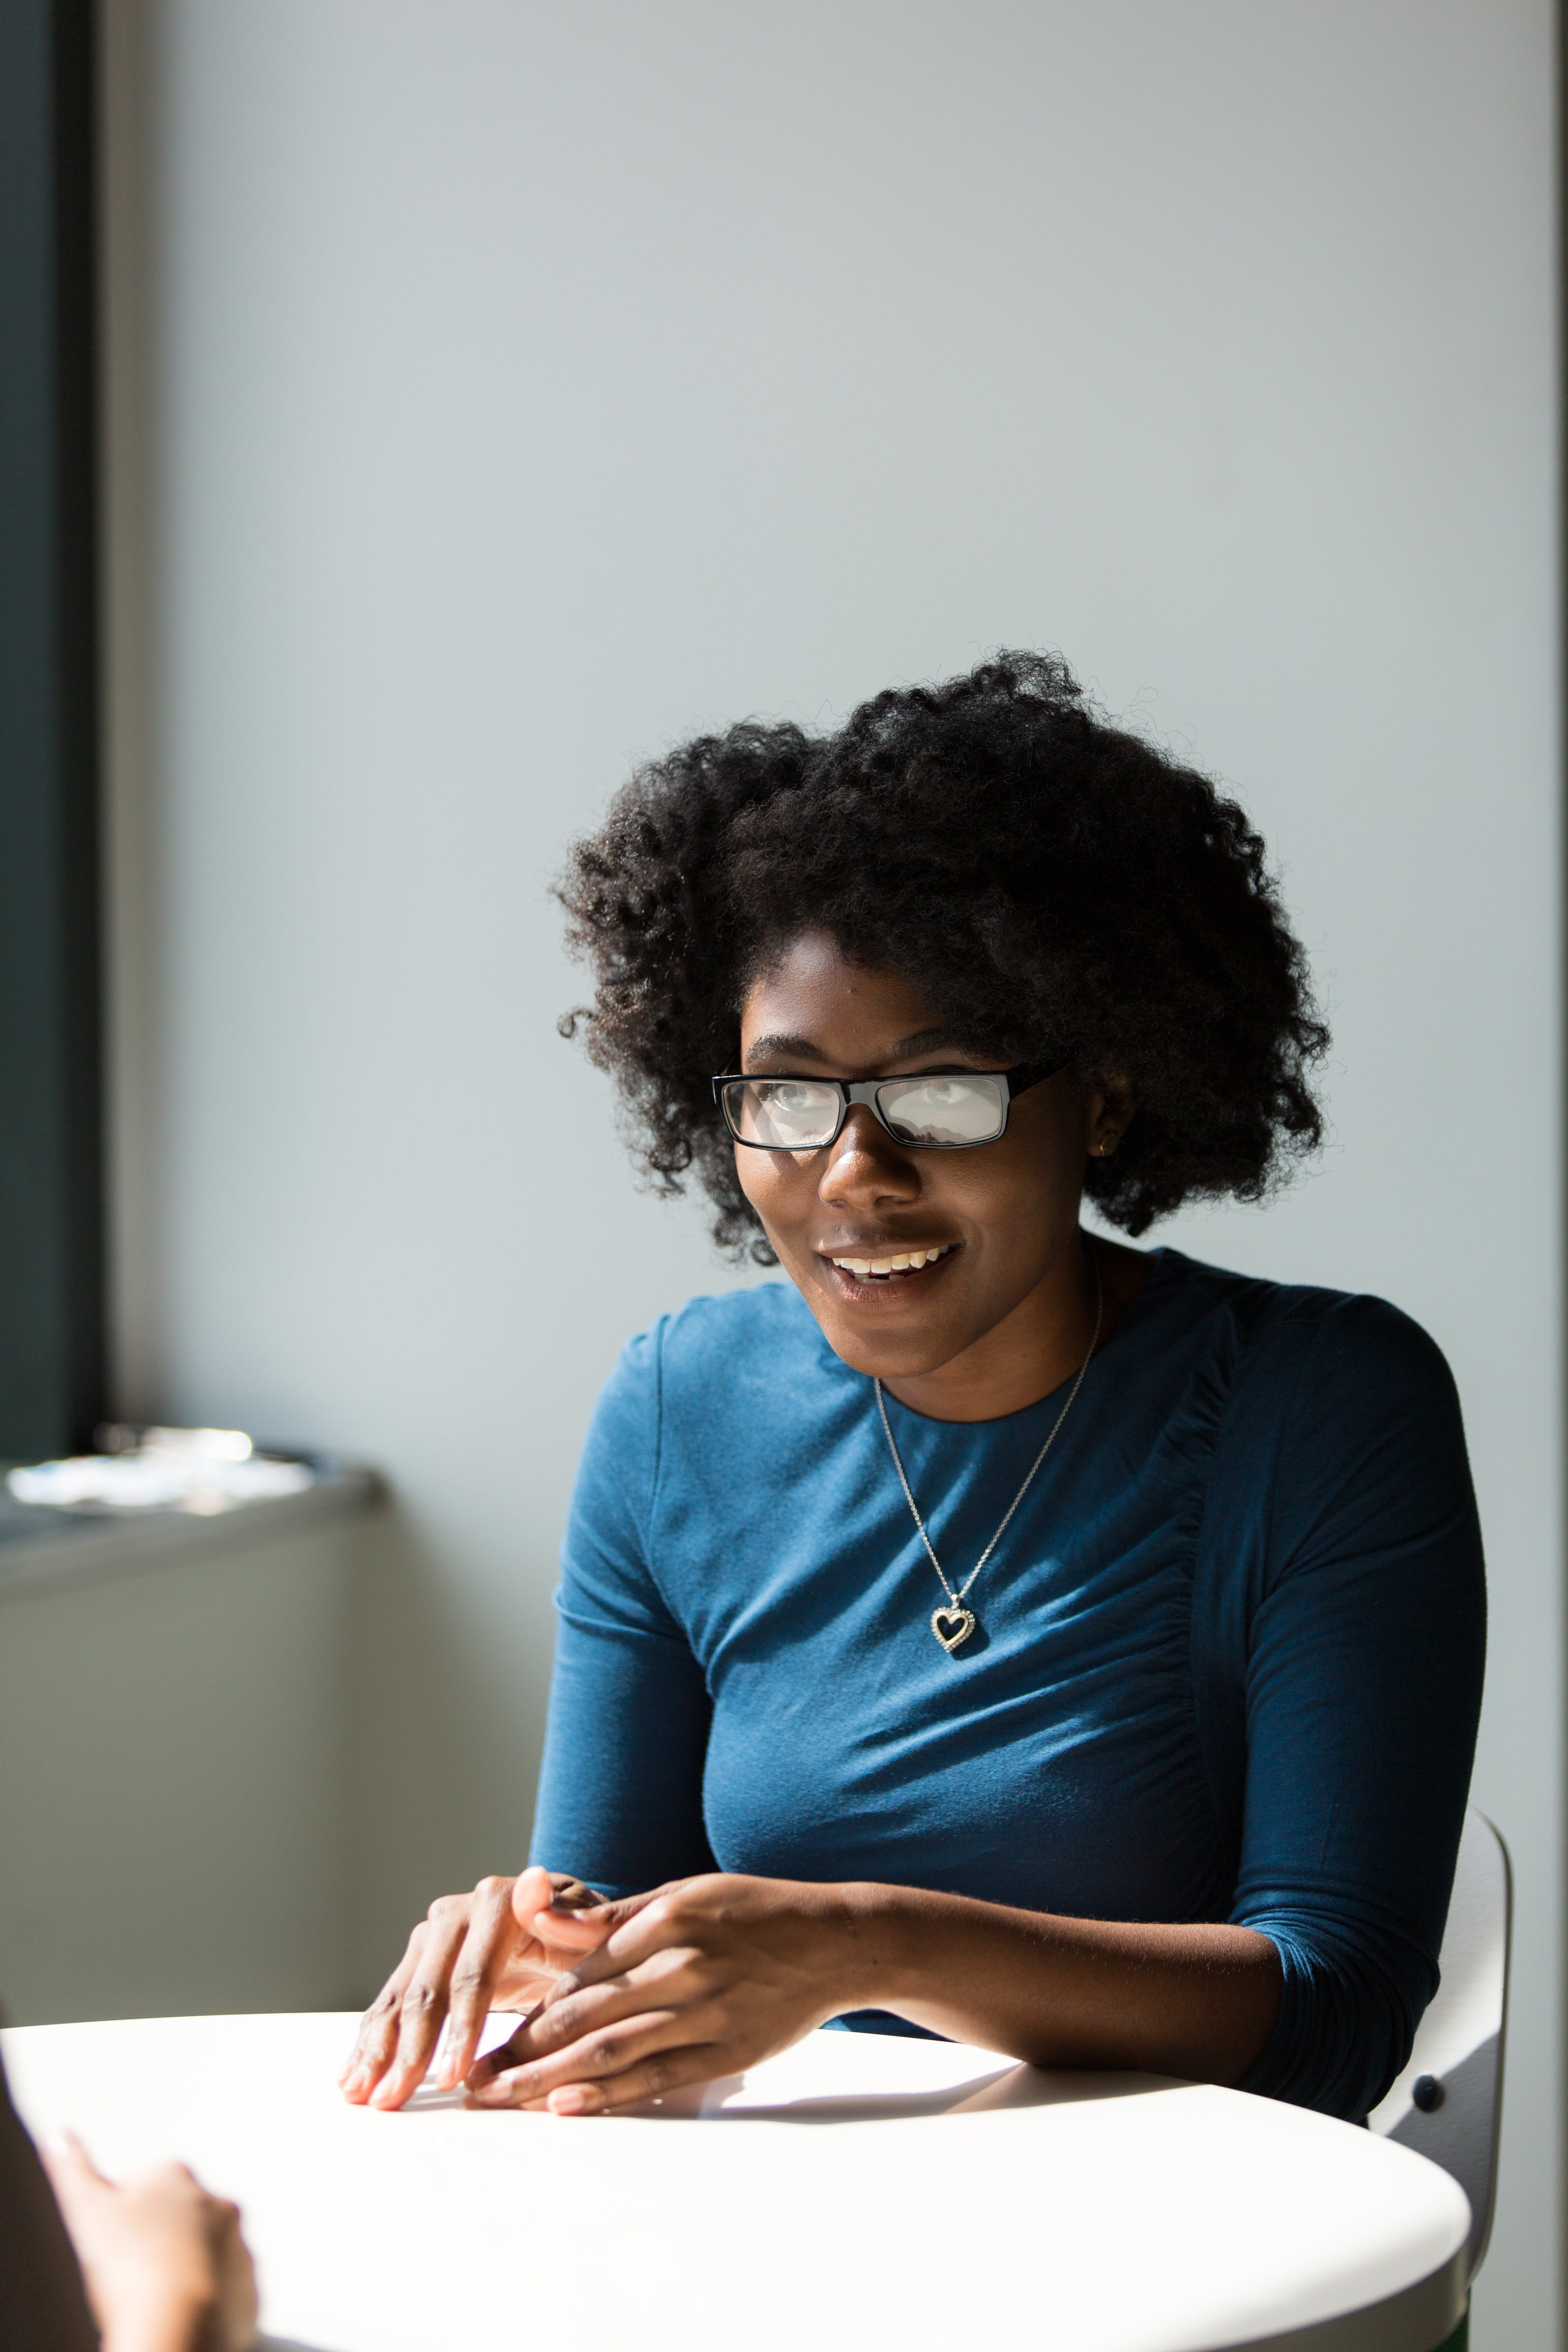 Woman Wearing Black Framed Eyeglasses and Blue Crew-neck Elbow-sleeved Top